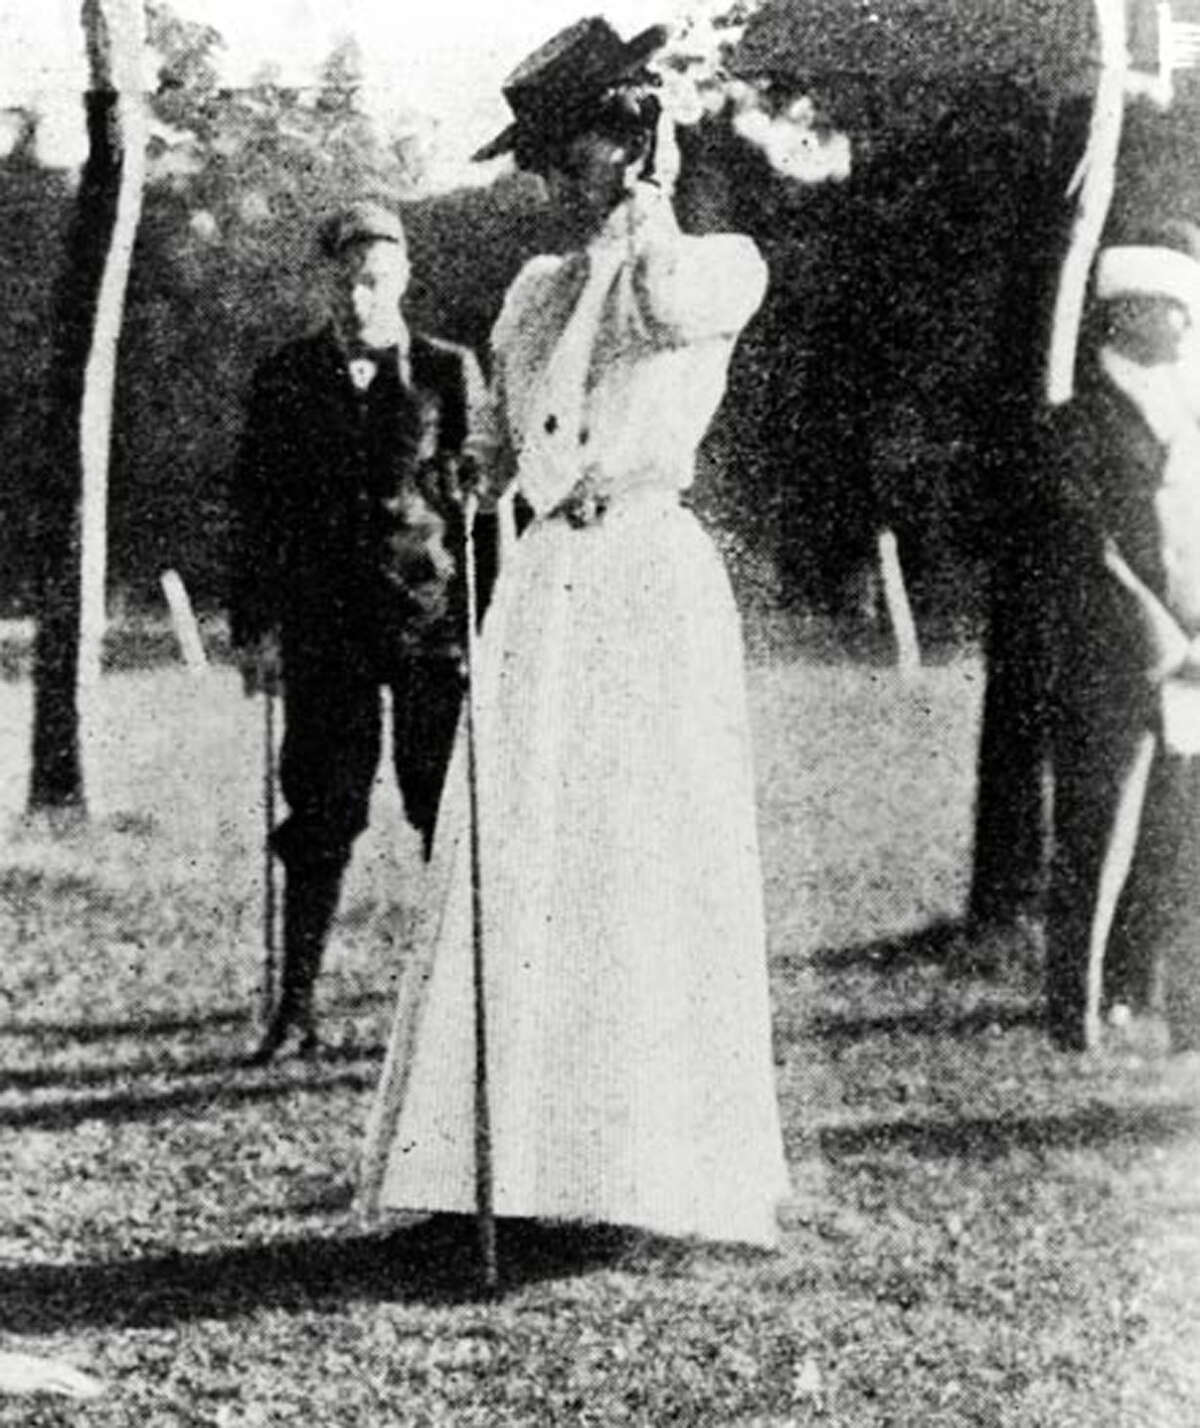 Margaret Abbott of Chicago was the first American woman to win an Olympic event, capturing first place in women's golf at the second of the modern Games, in Paris in 1900. Incredibly, she thought she was competing in a local amateur event, and not in the Olympics.